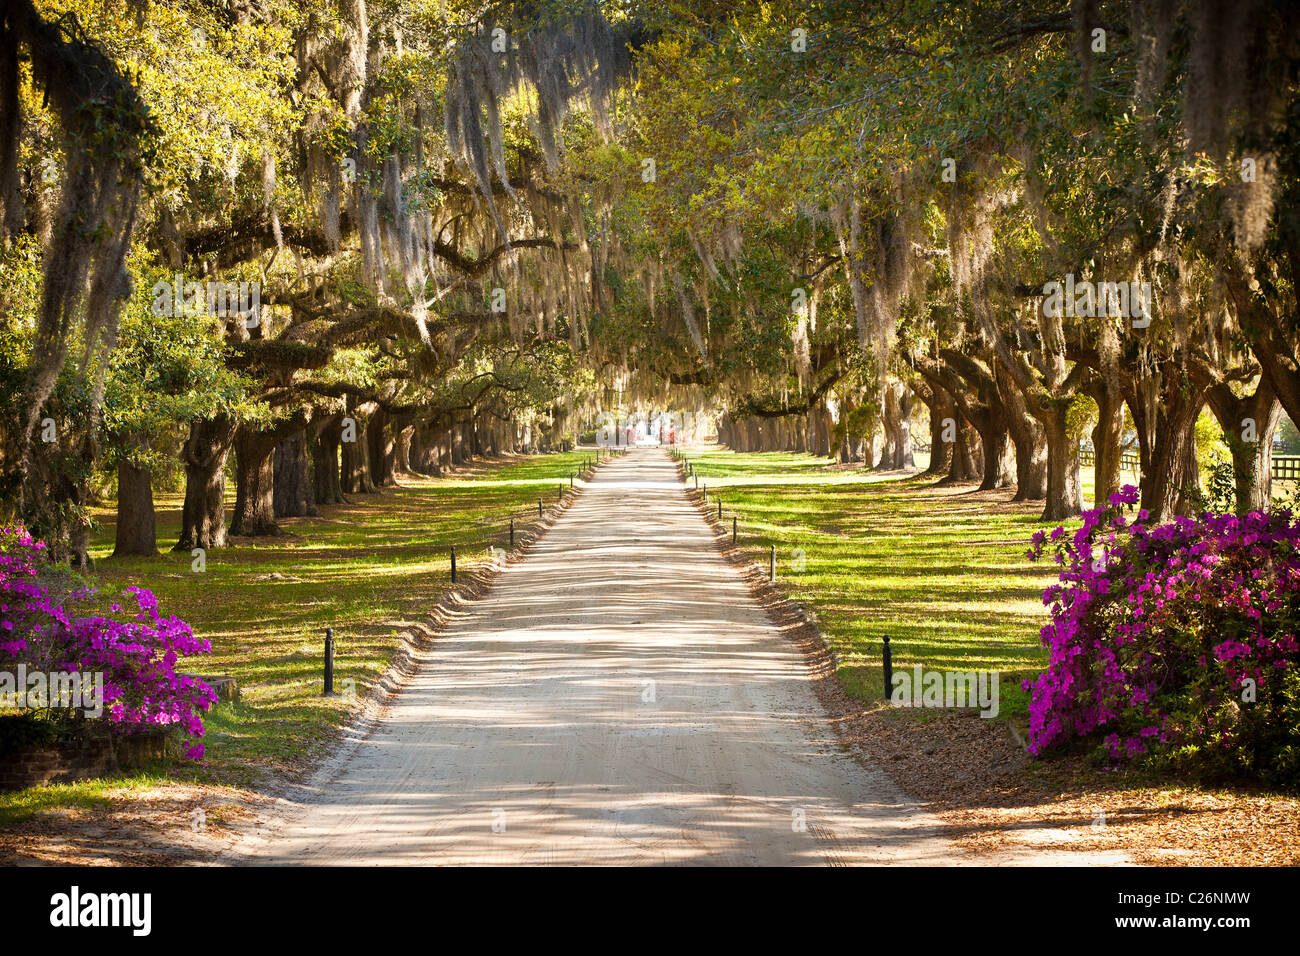 Avenue of the Oaks at Boone Hall Plantation in Charleston, SC. - Stock Image